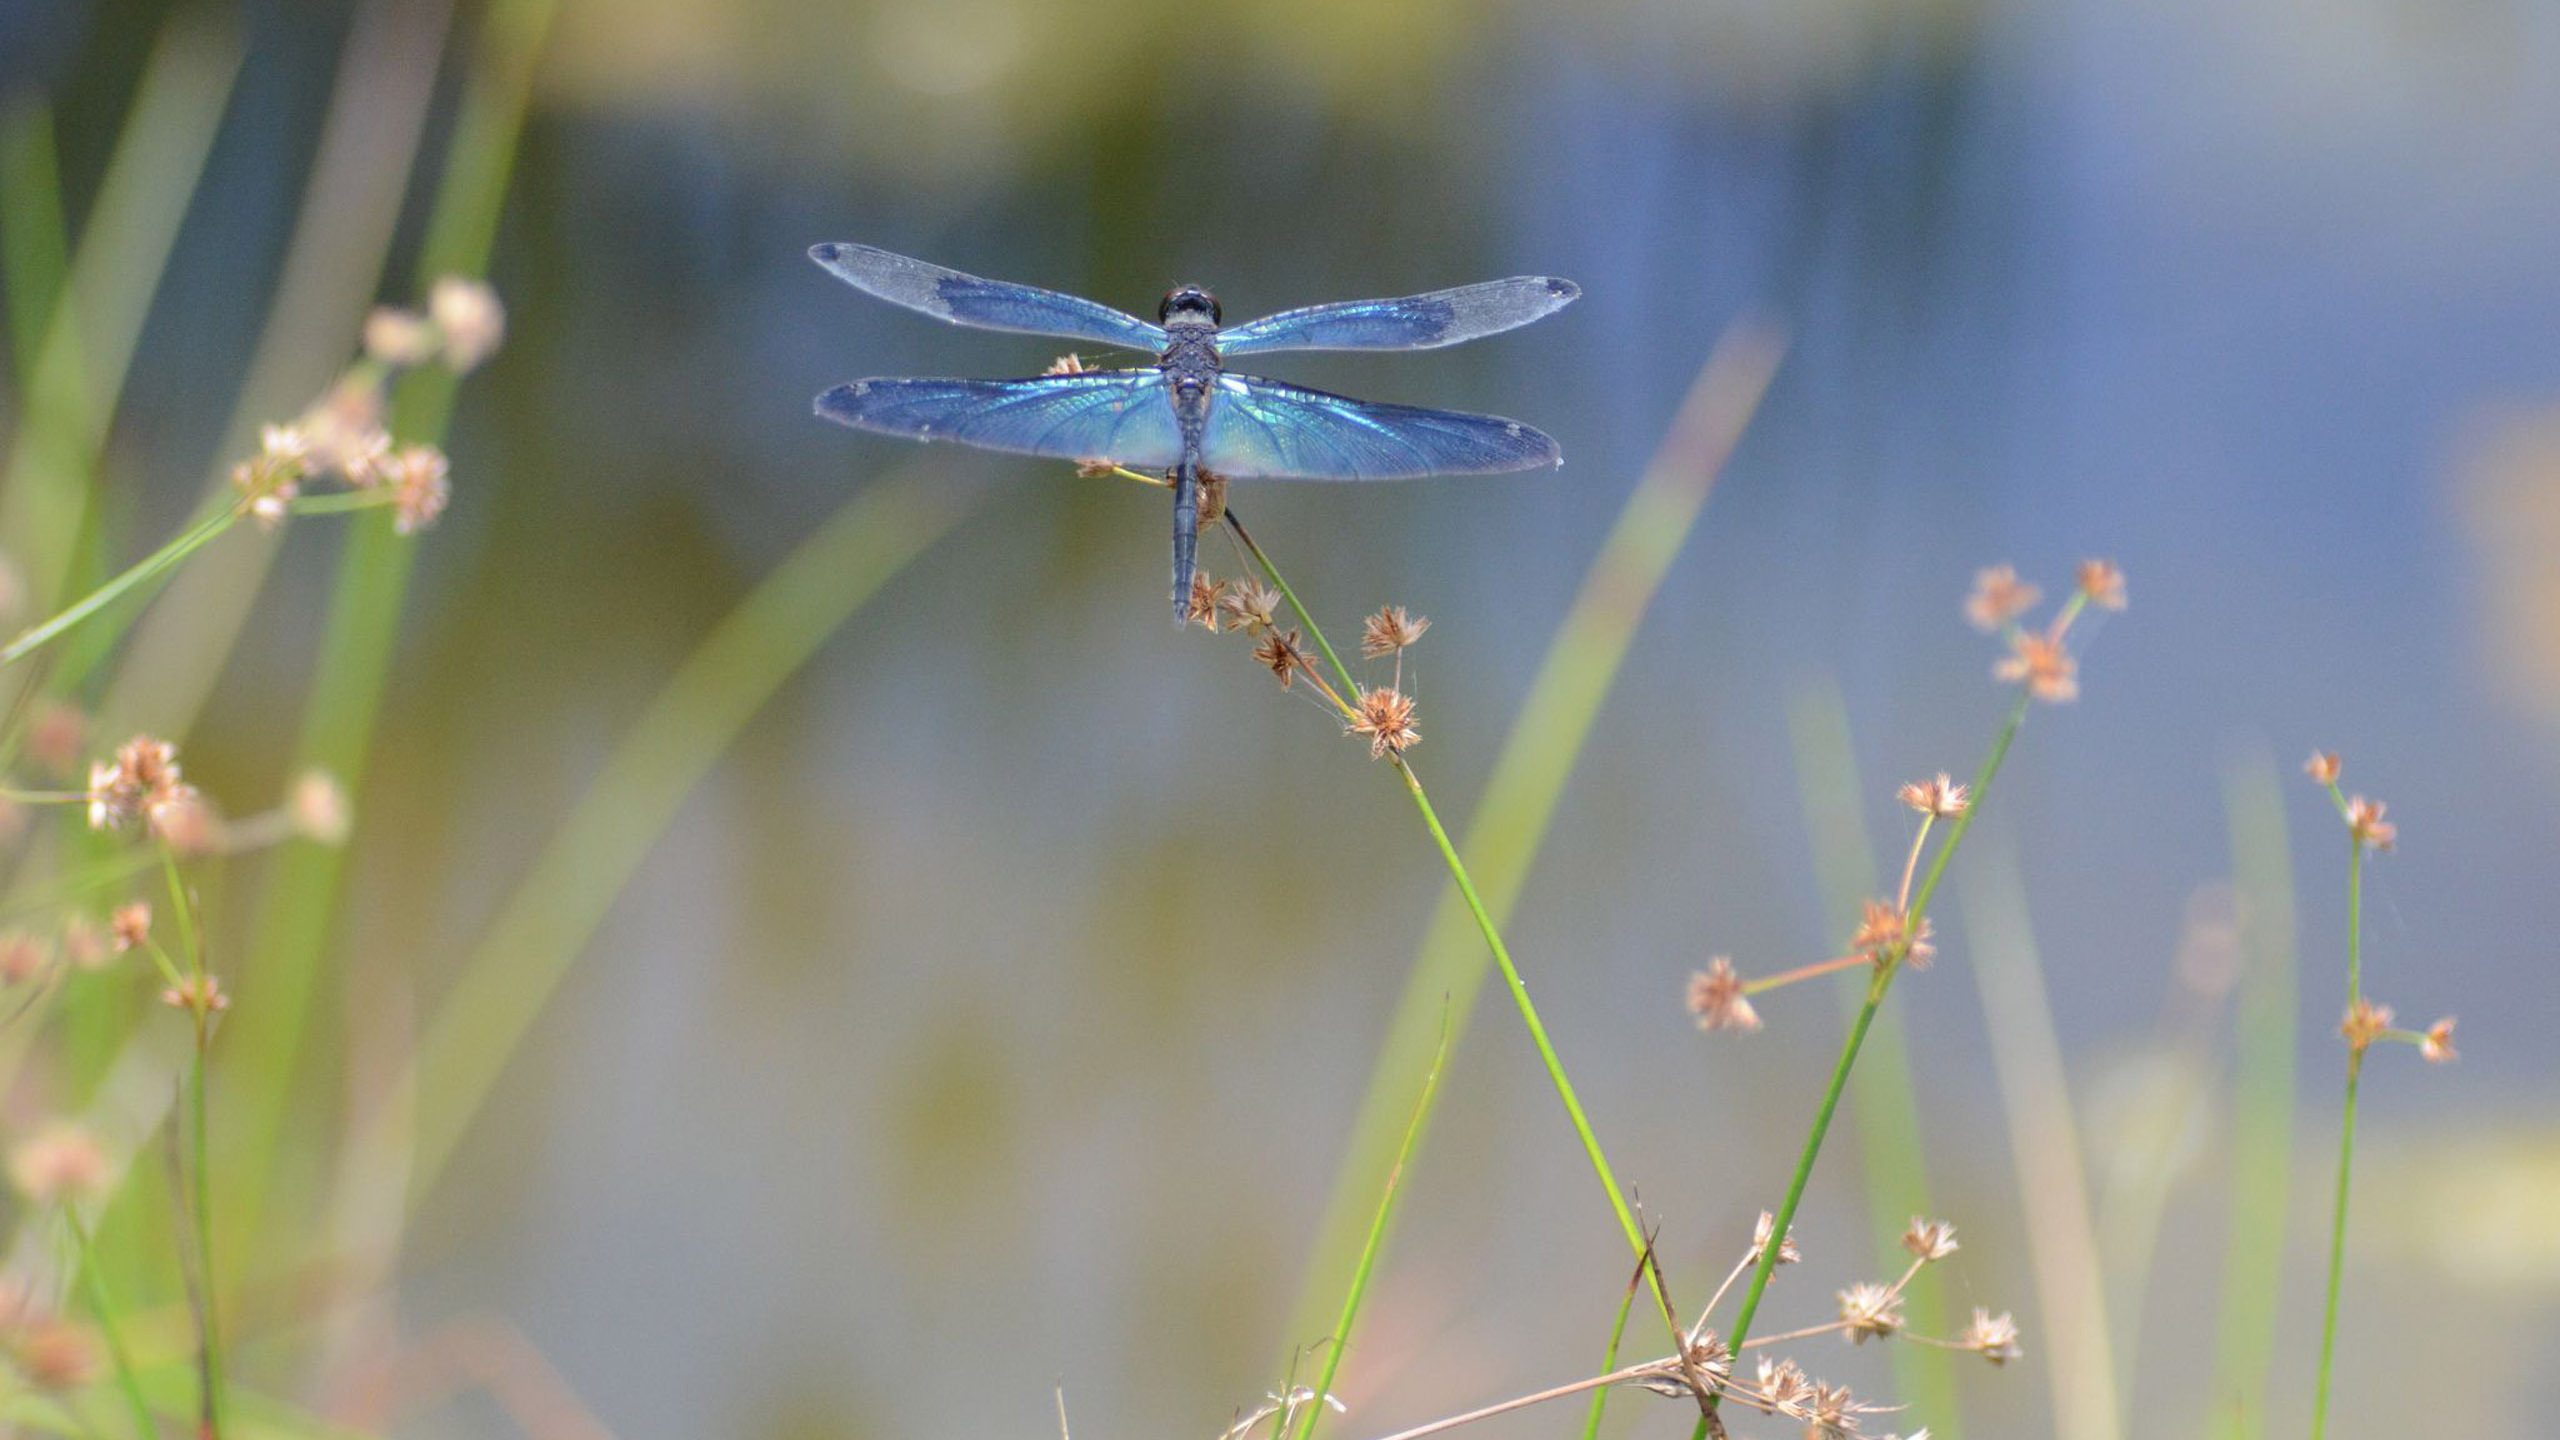 Dragonfly Backgrounds Download 2560x1440